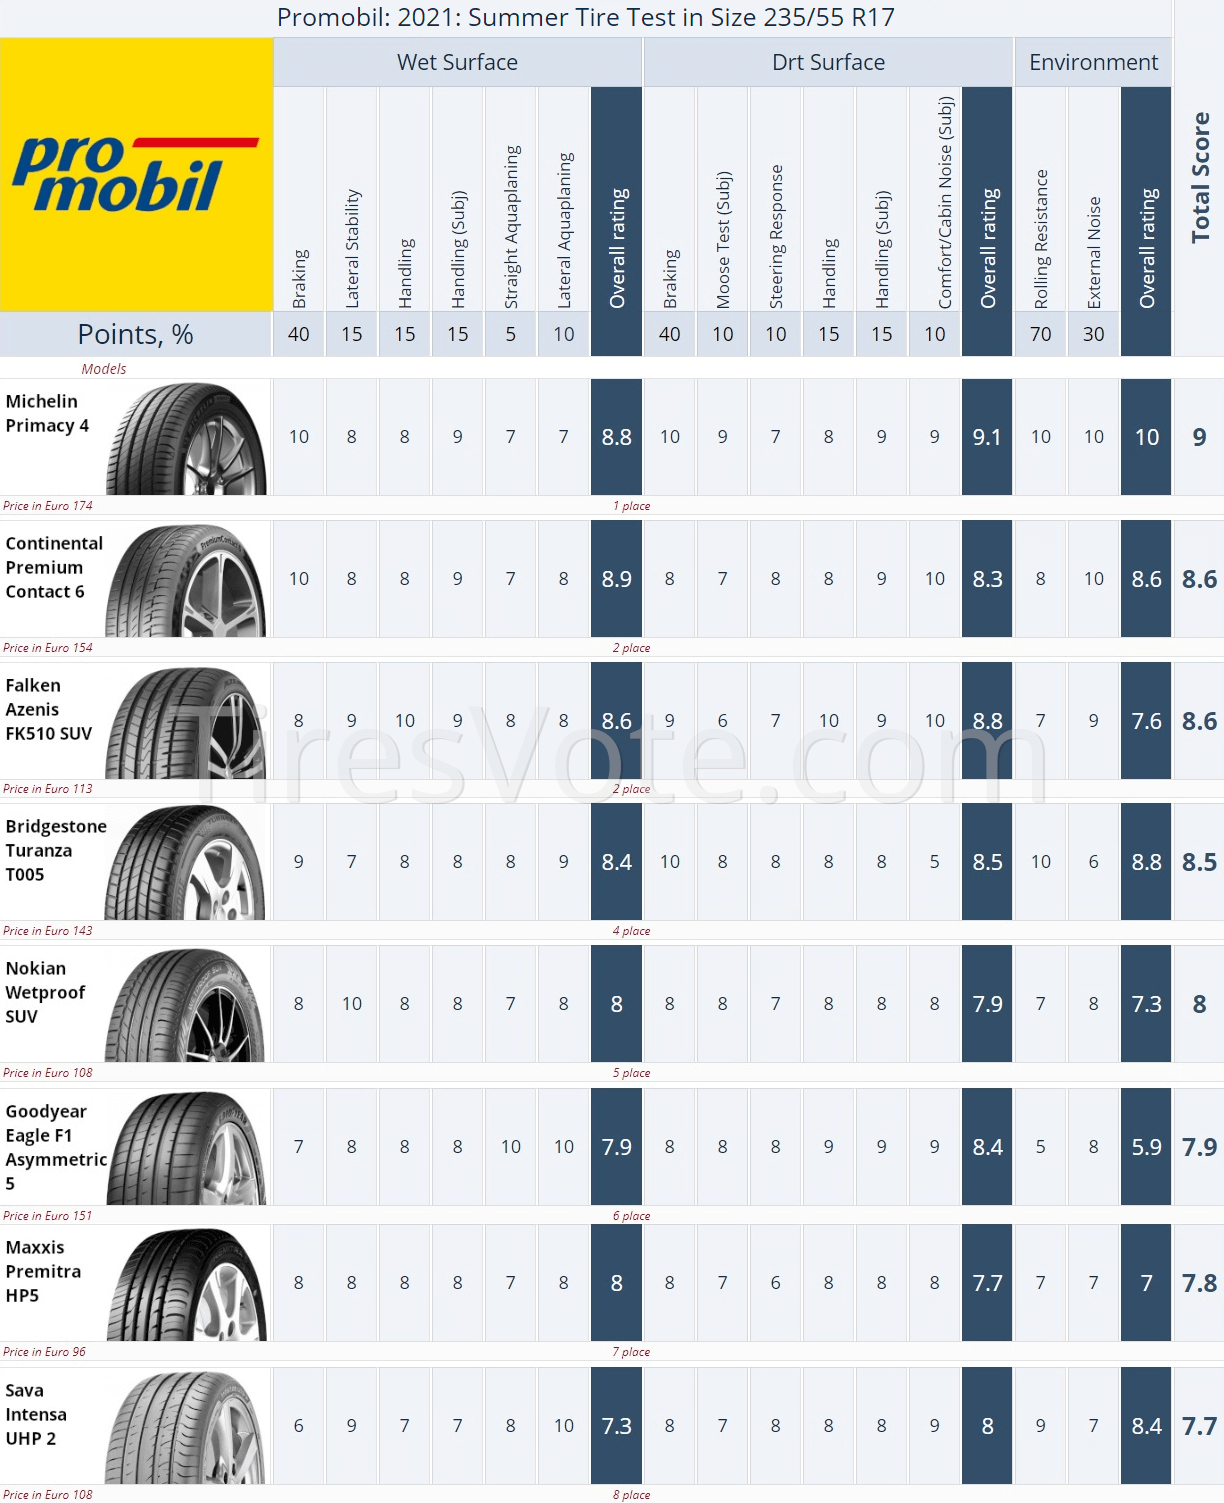 Commercial Summer Tire Test Summary, Promobil 235/55R17, 2021. Places 1–8. Click to enlarge.